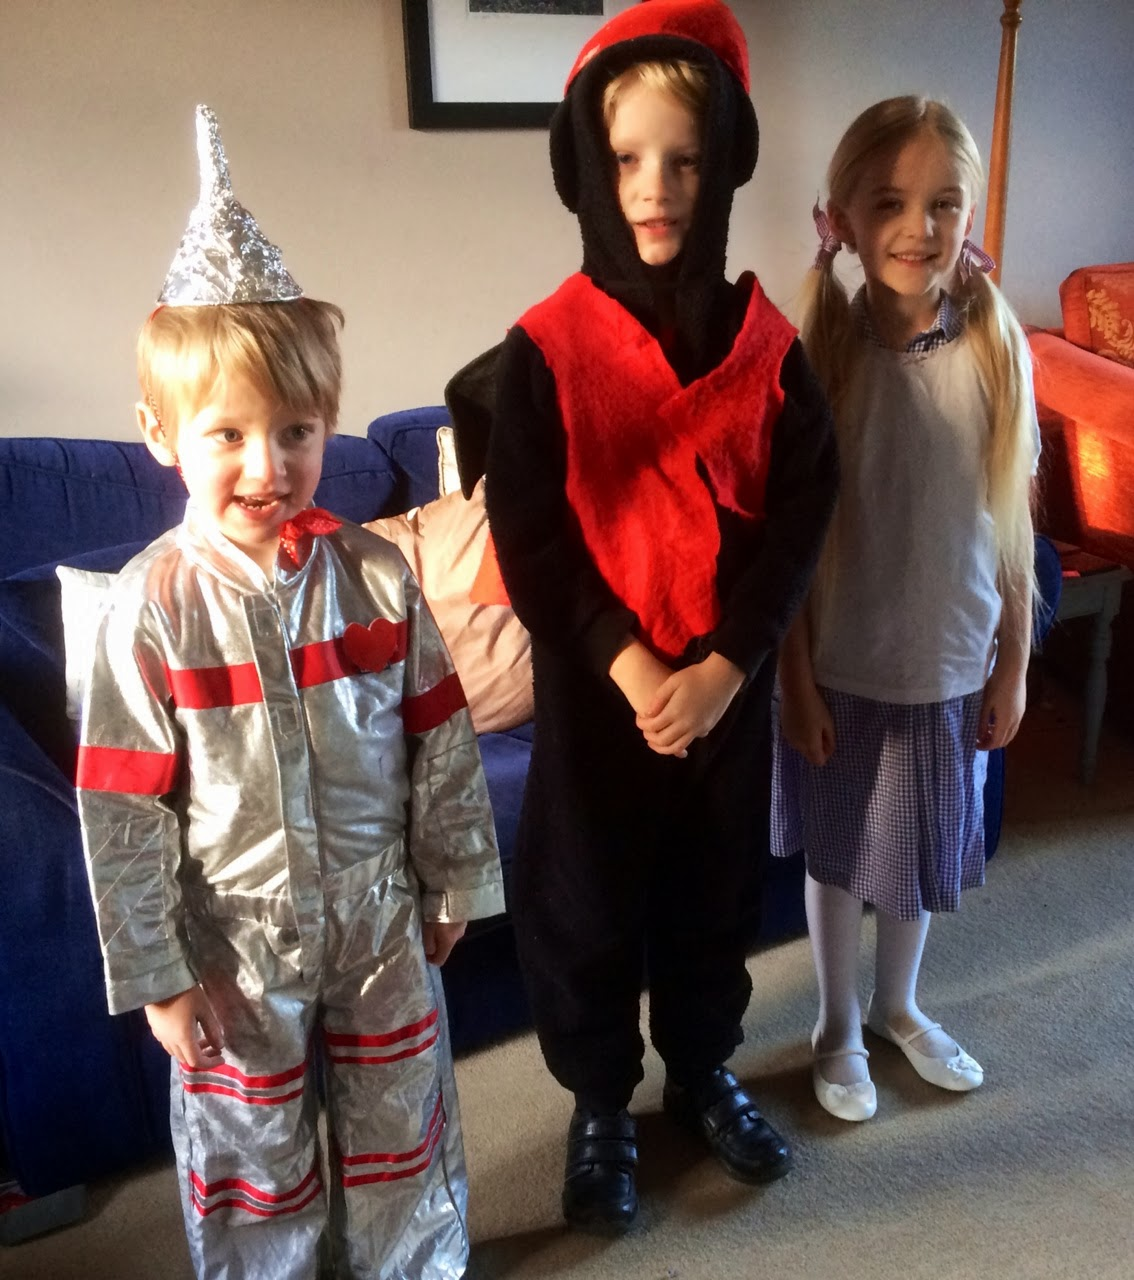 children dressed as characters from The Wizard of Oz